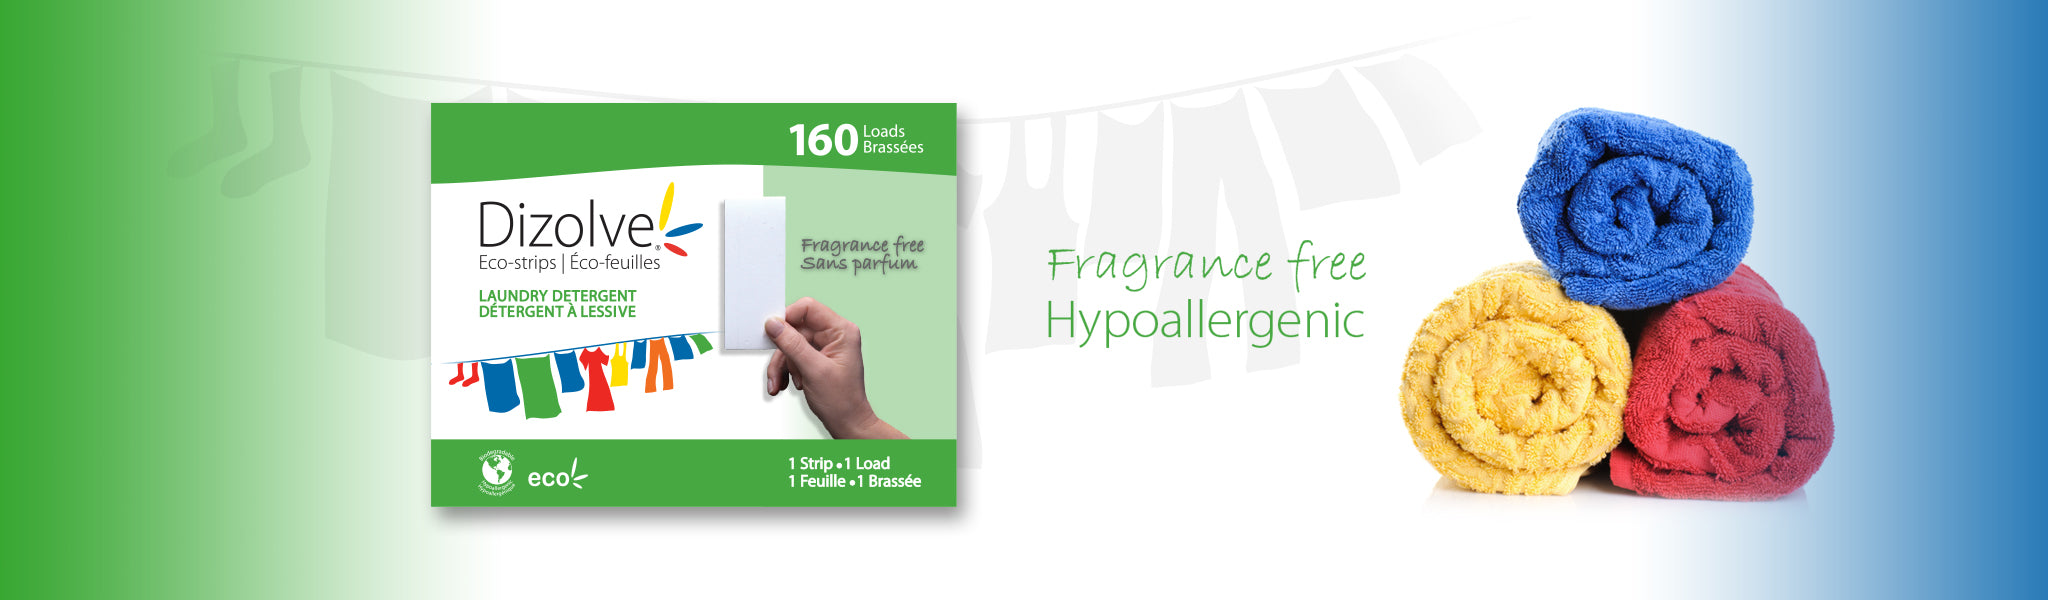 Fragrance free | Hypoallergenic